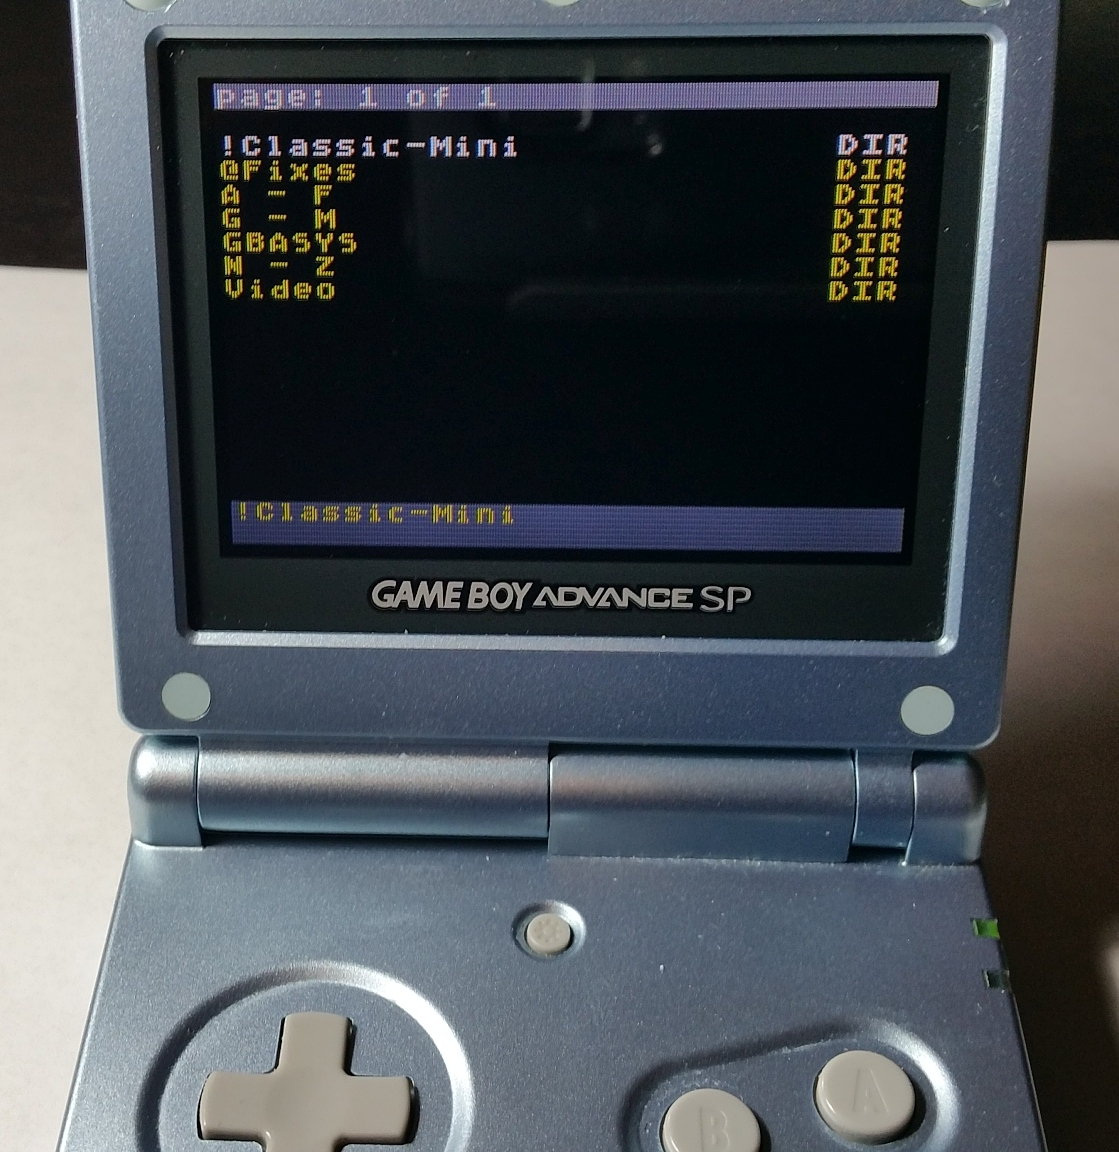 Game boy color everdrive - The Gba X5 Works In Every Official Game Boy Advance Product The Original Sp Frontlit And Backlit The Game Boy Player For The Gamecube The Gba Micro